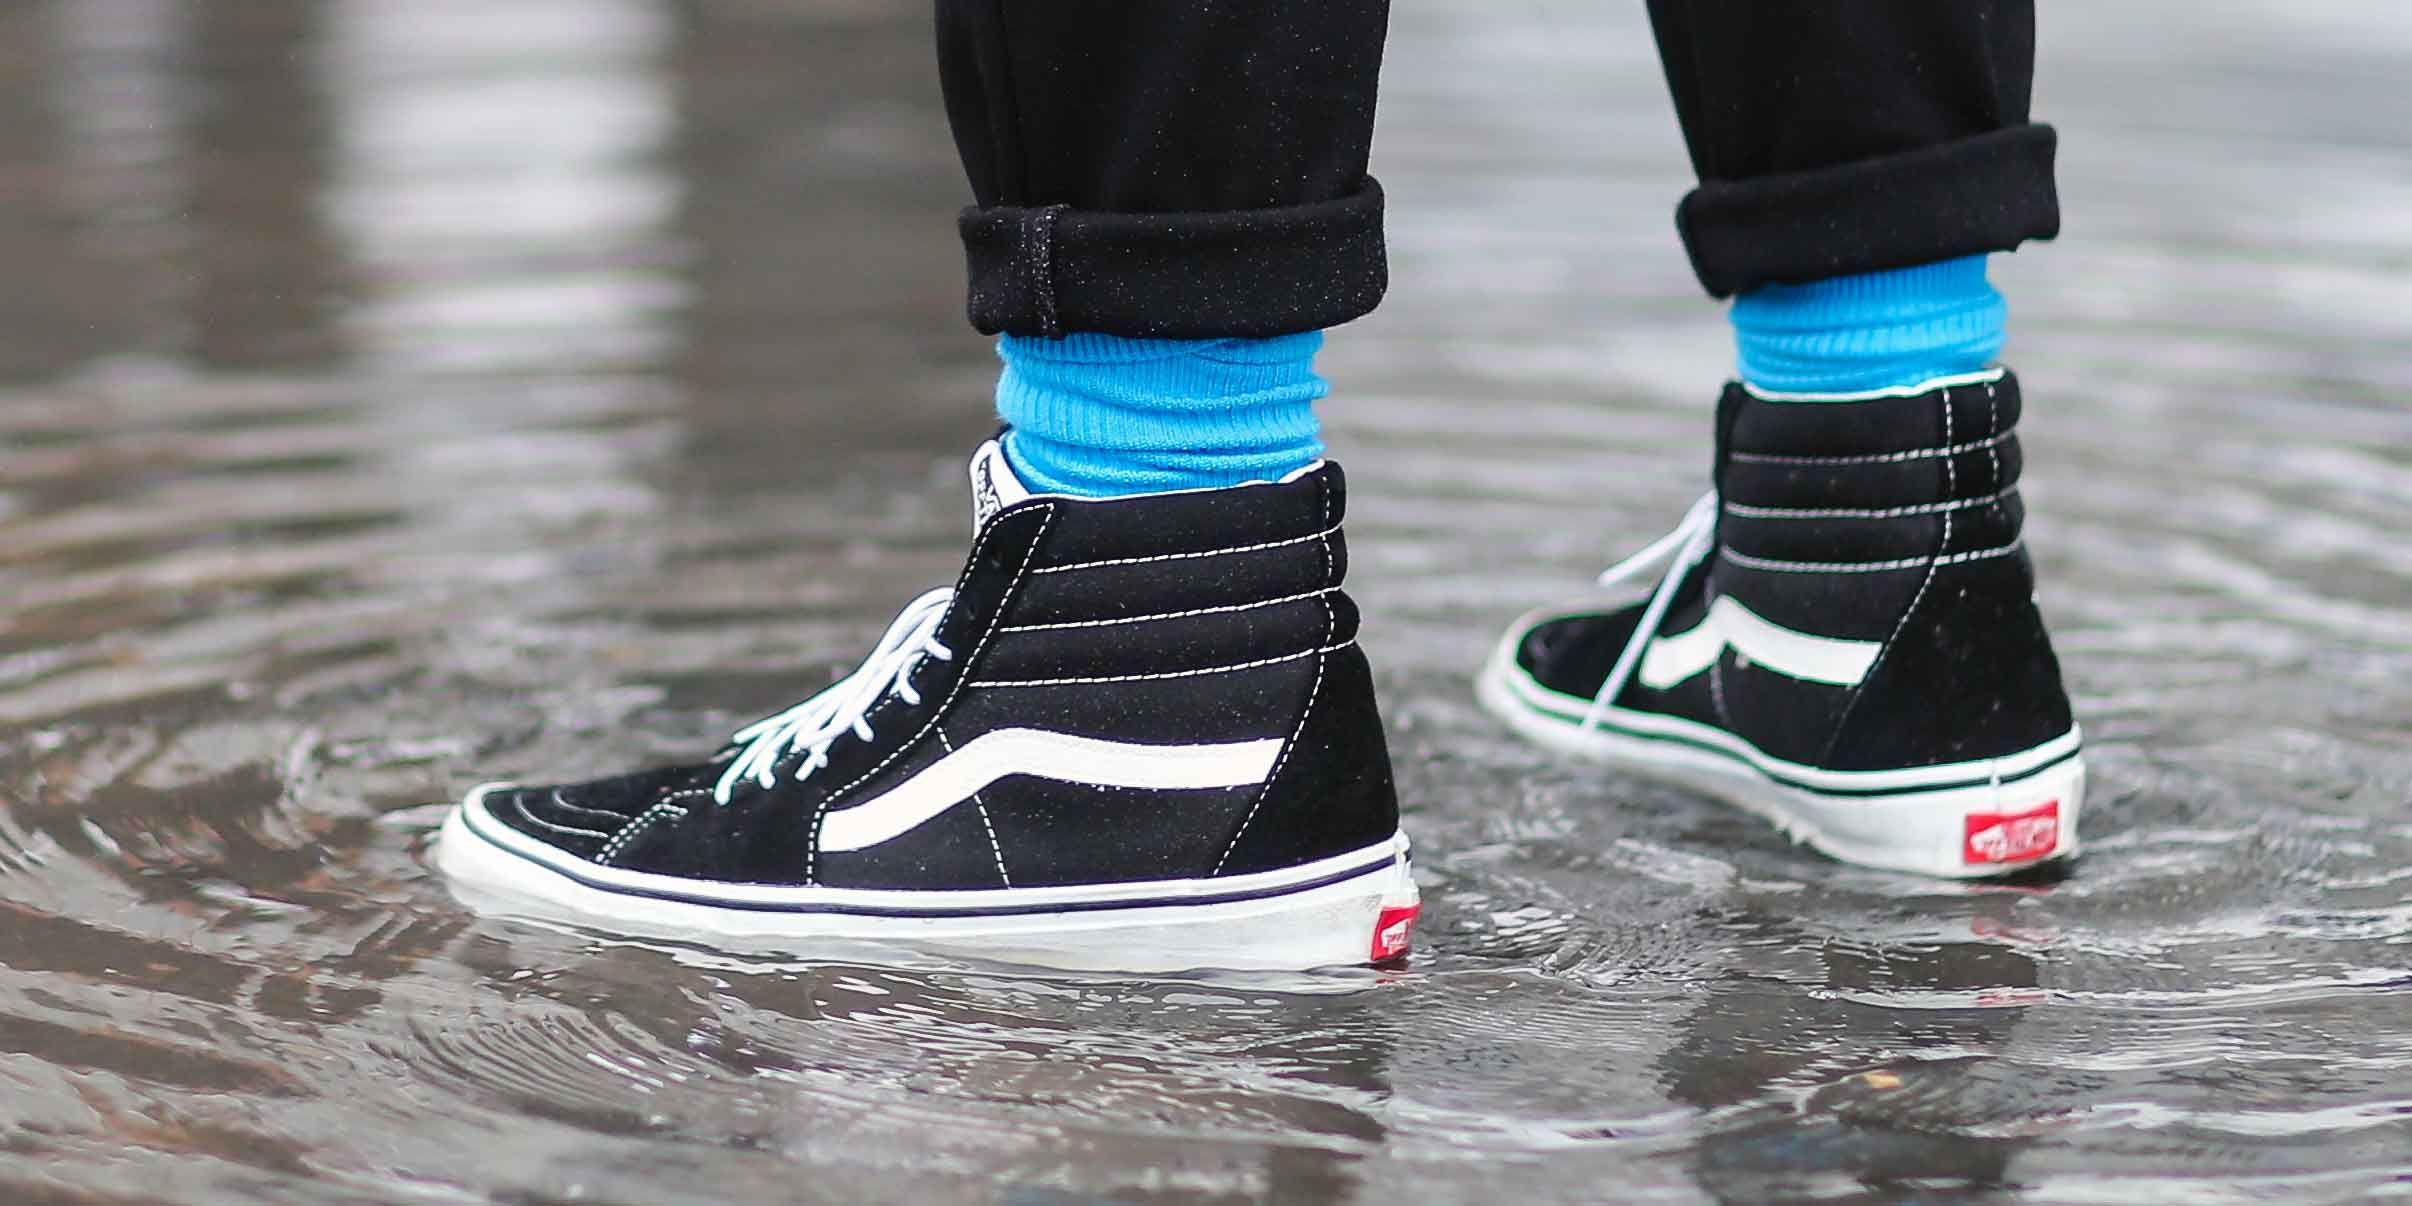 The Best Waterproof Shoes to Keep Your Feet Dry